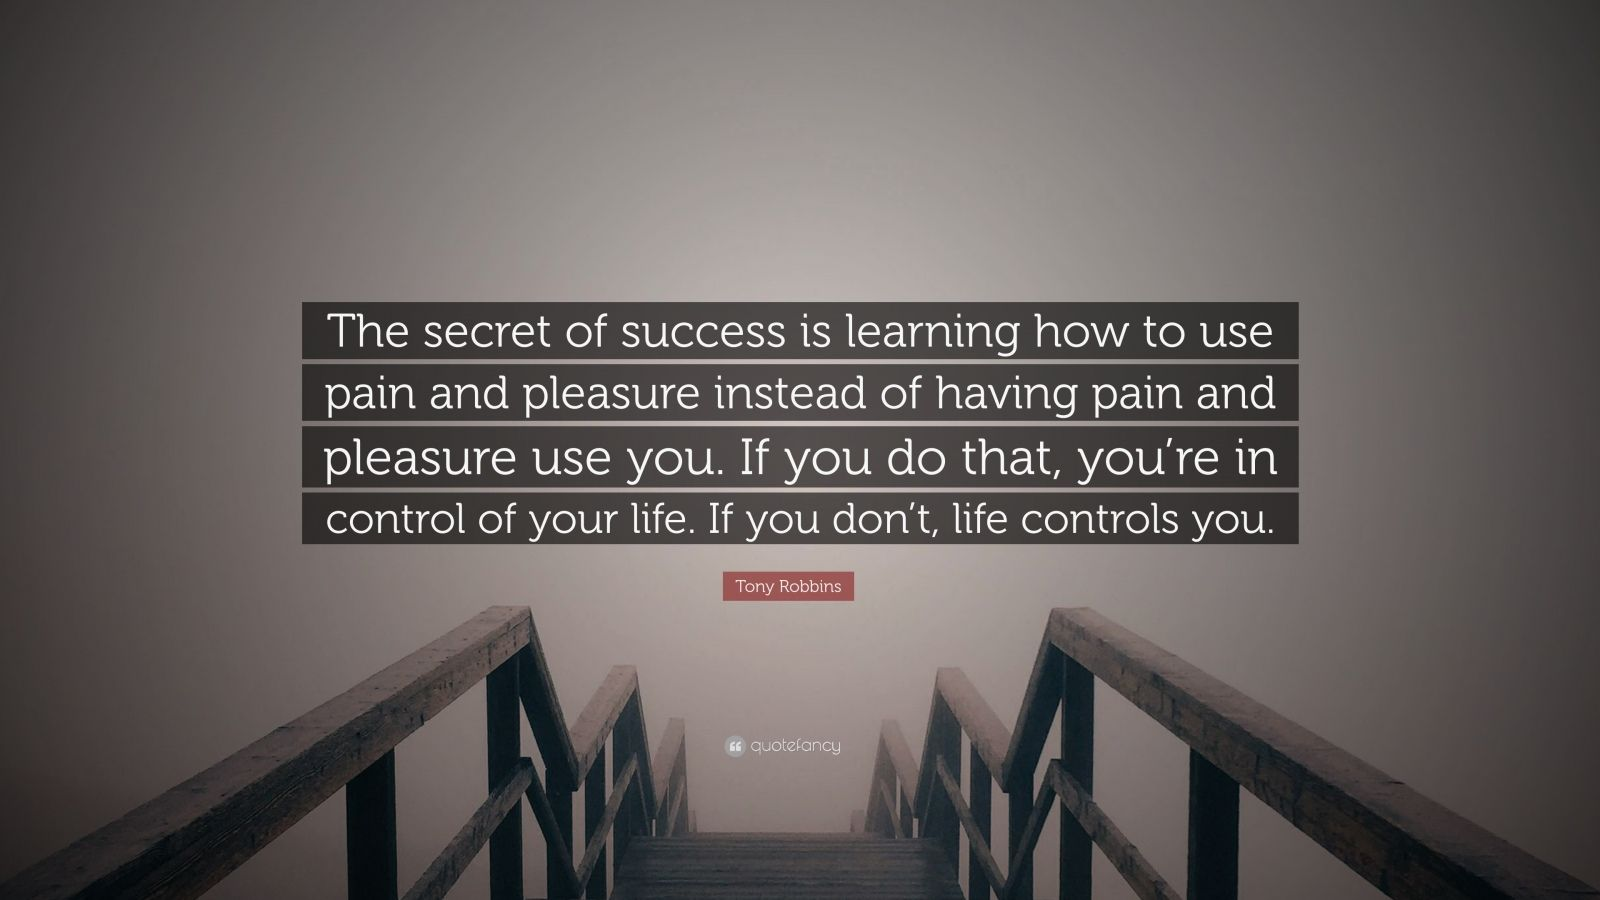 """Tony Robbins Quote: """"The secret of success is learning how to use pain and pleasure instead of having pain and pleasure use you. If you do that, you're in control of your life. If you don't, life controls you."""""""